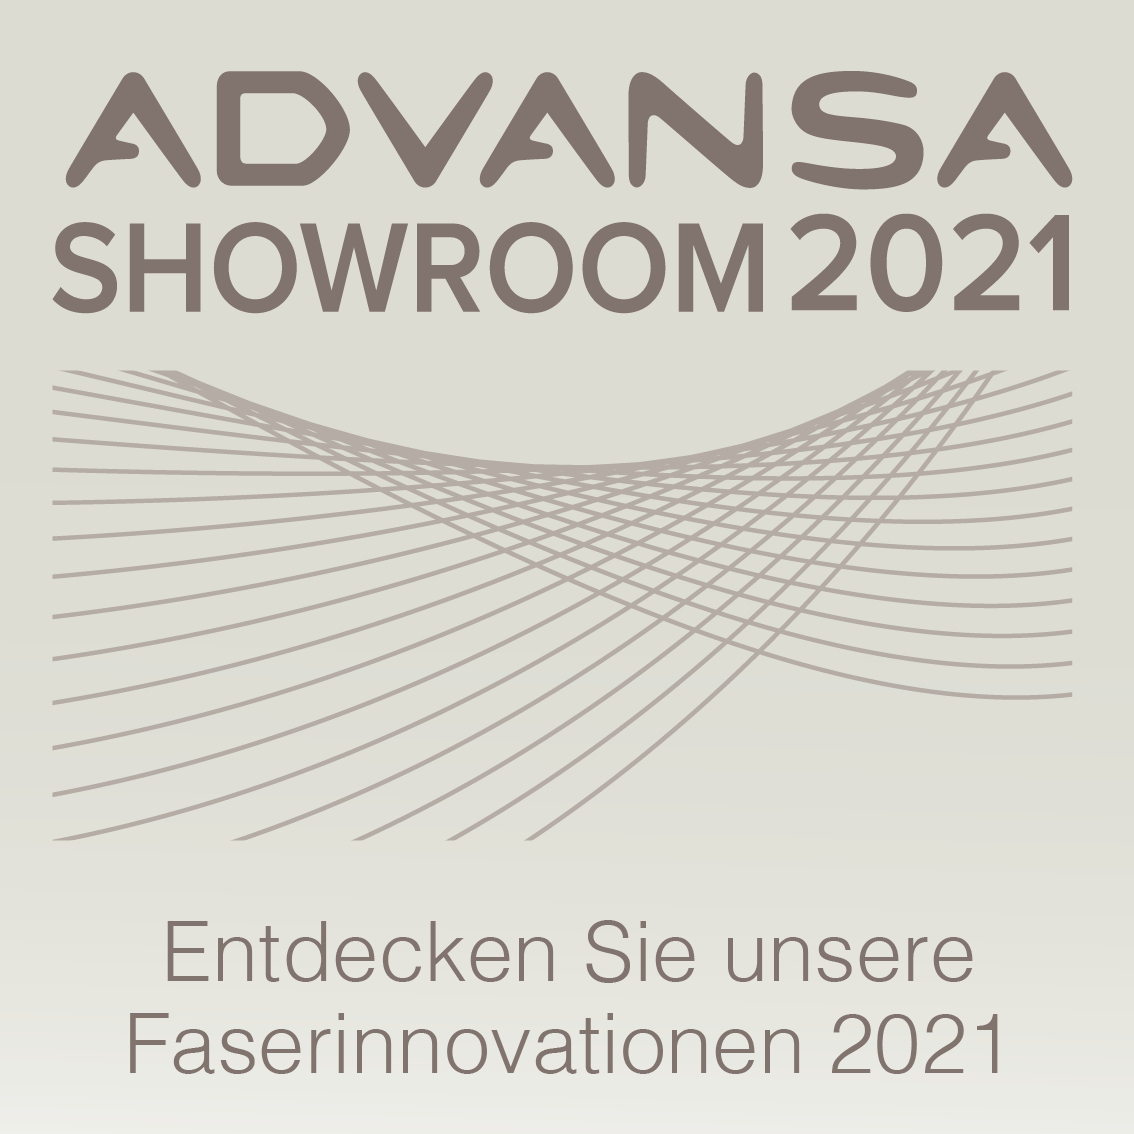 ADVANSA Showroom 2021